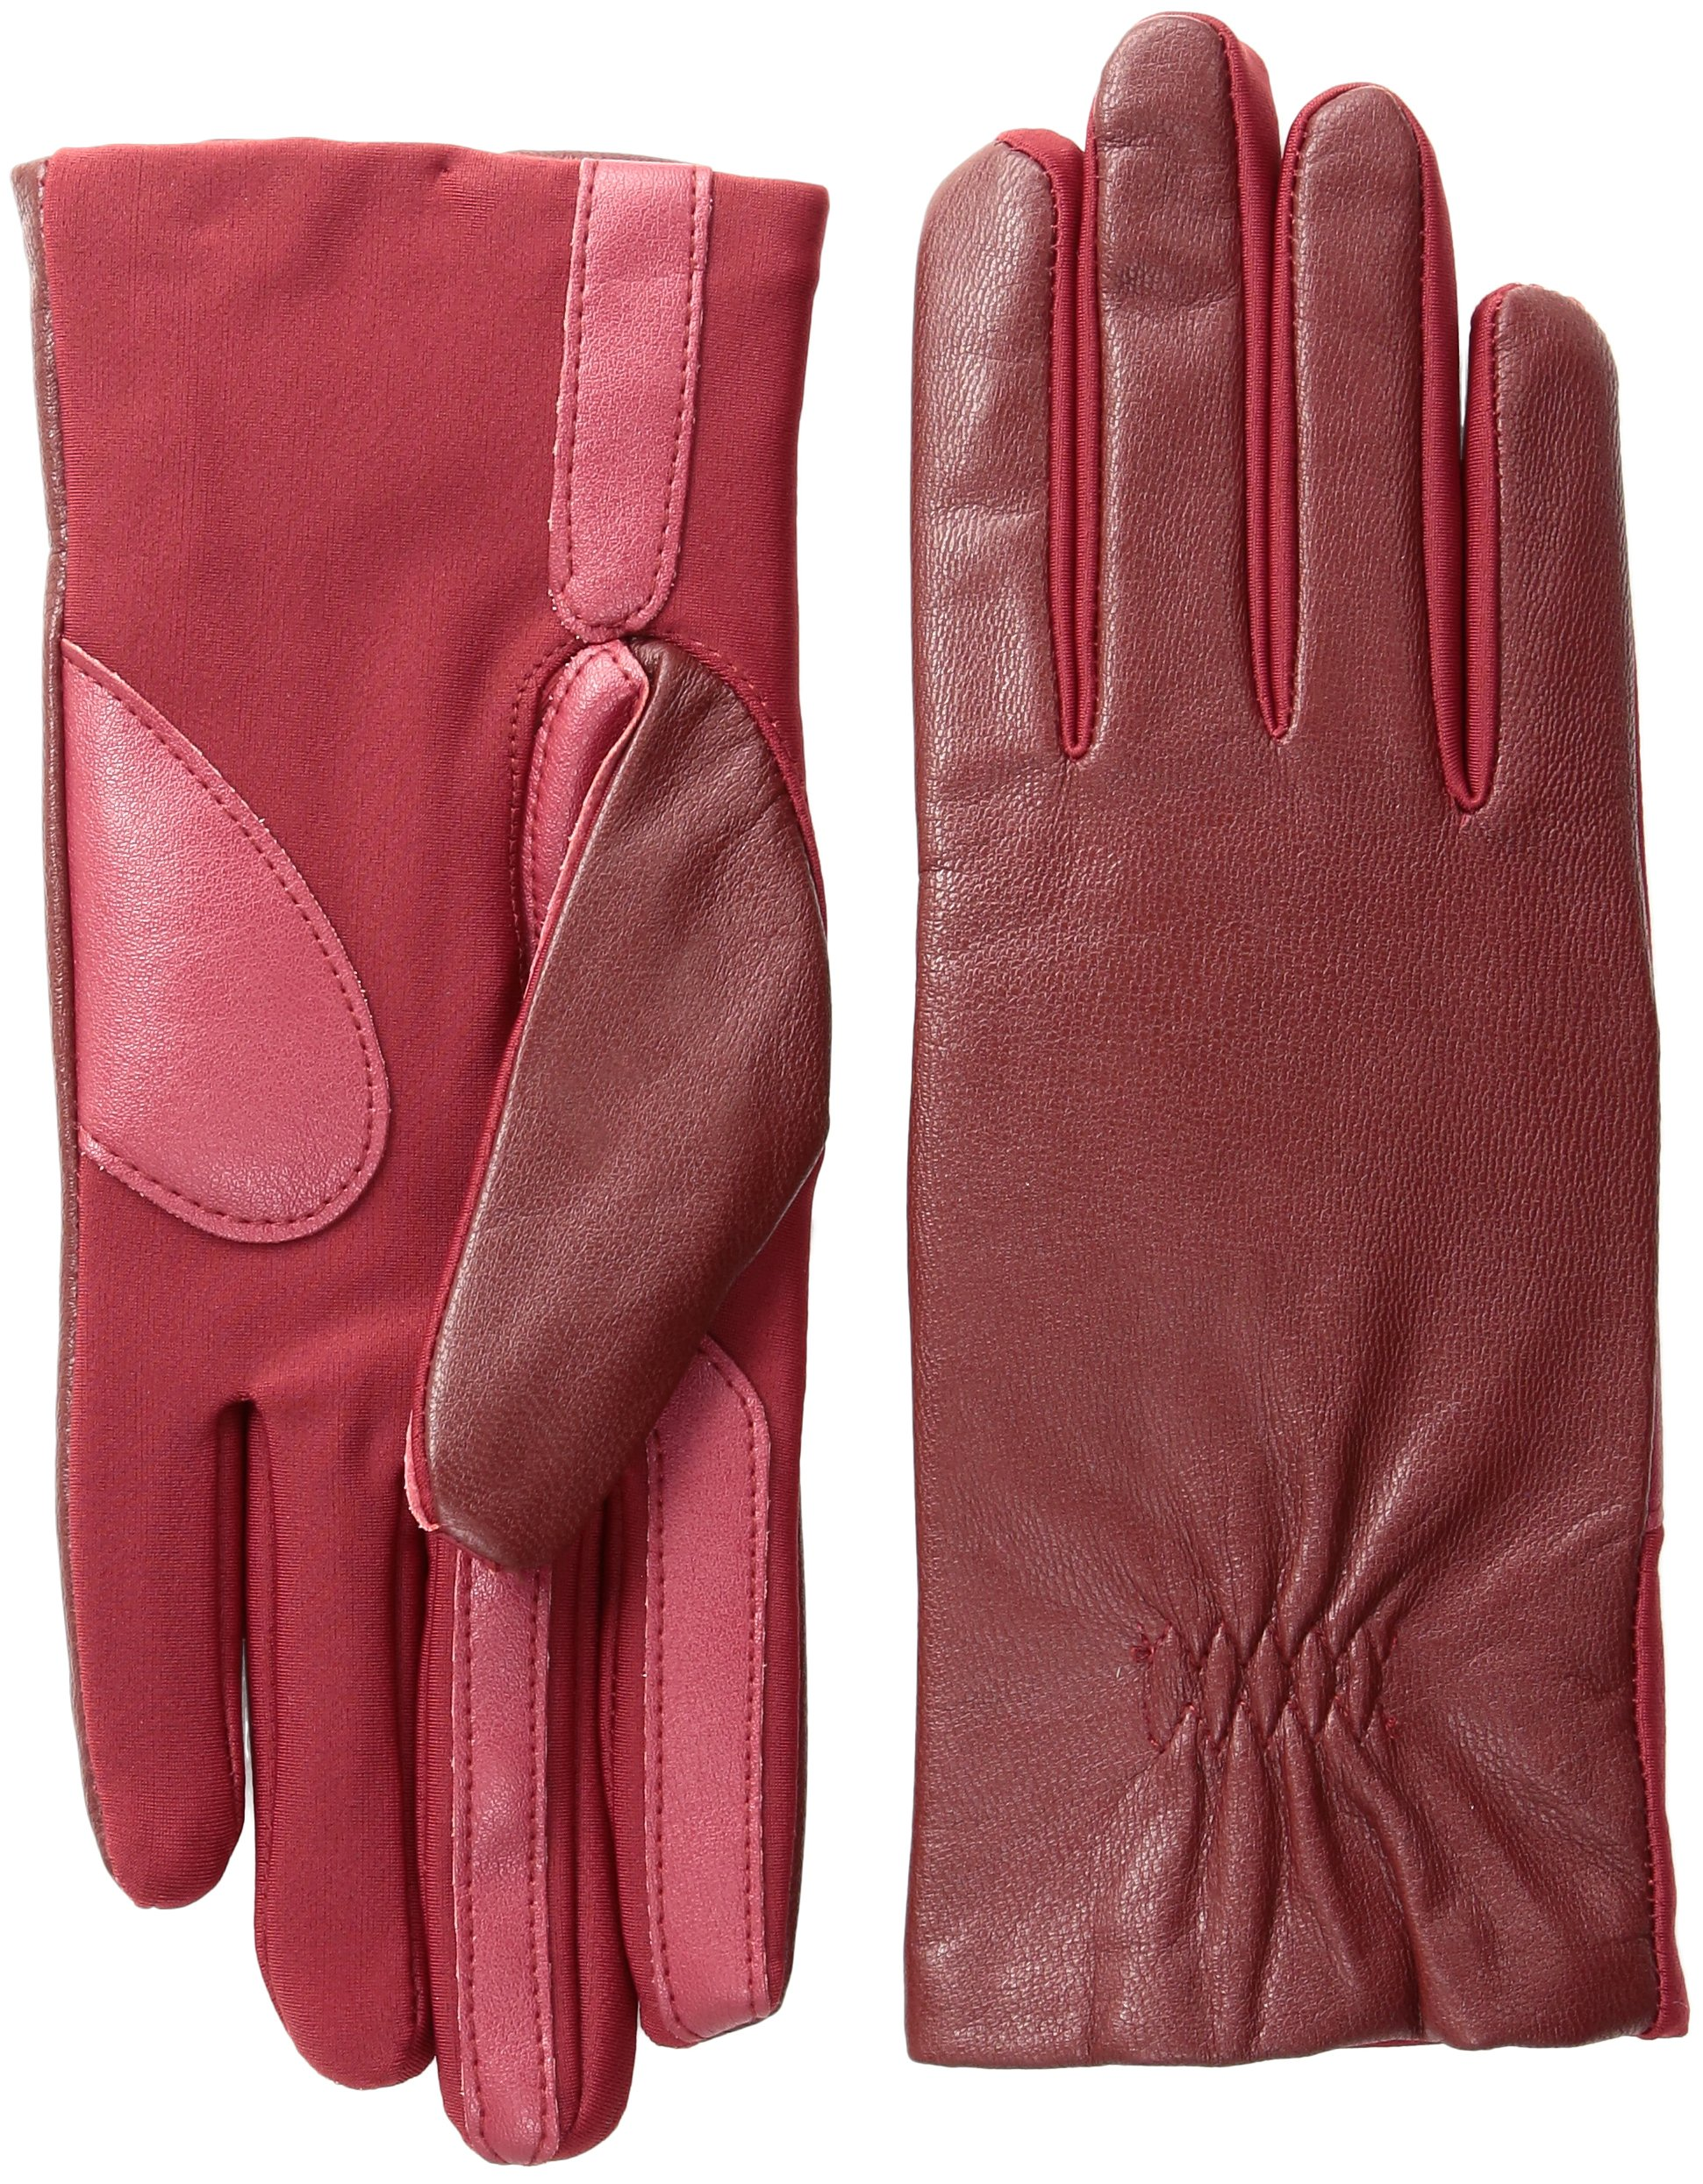 Isotoner Women's Stretch Leather Gloves Fleece Lined with Smart Touch Technology, Really Red Large/X-Large